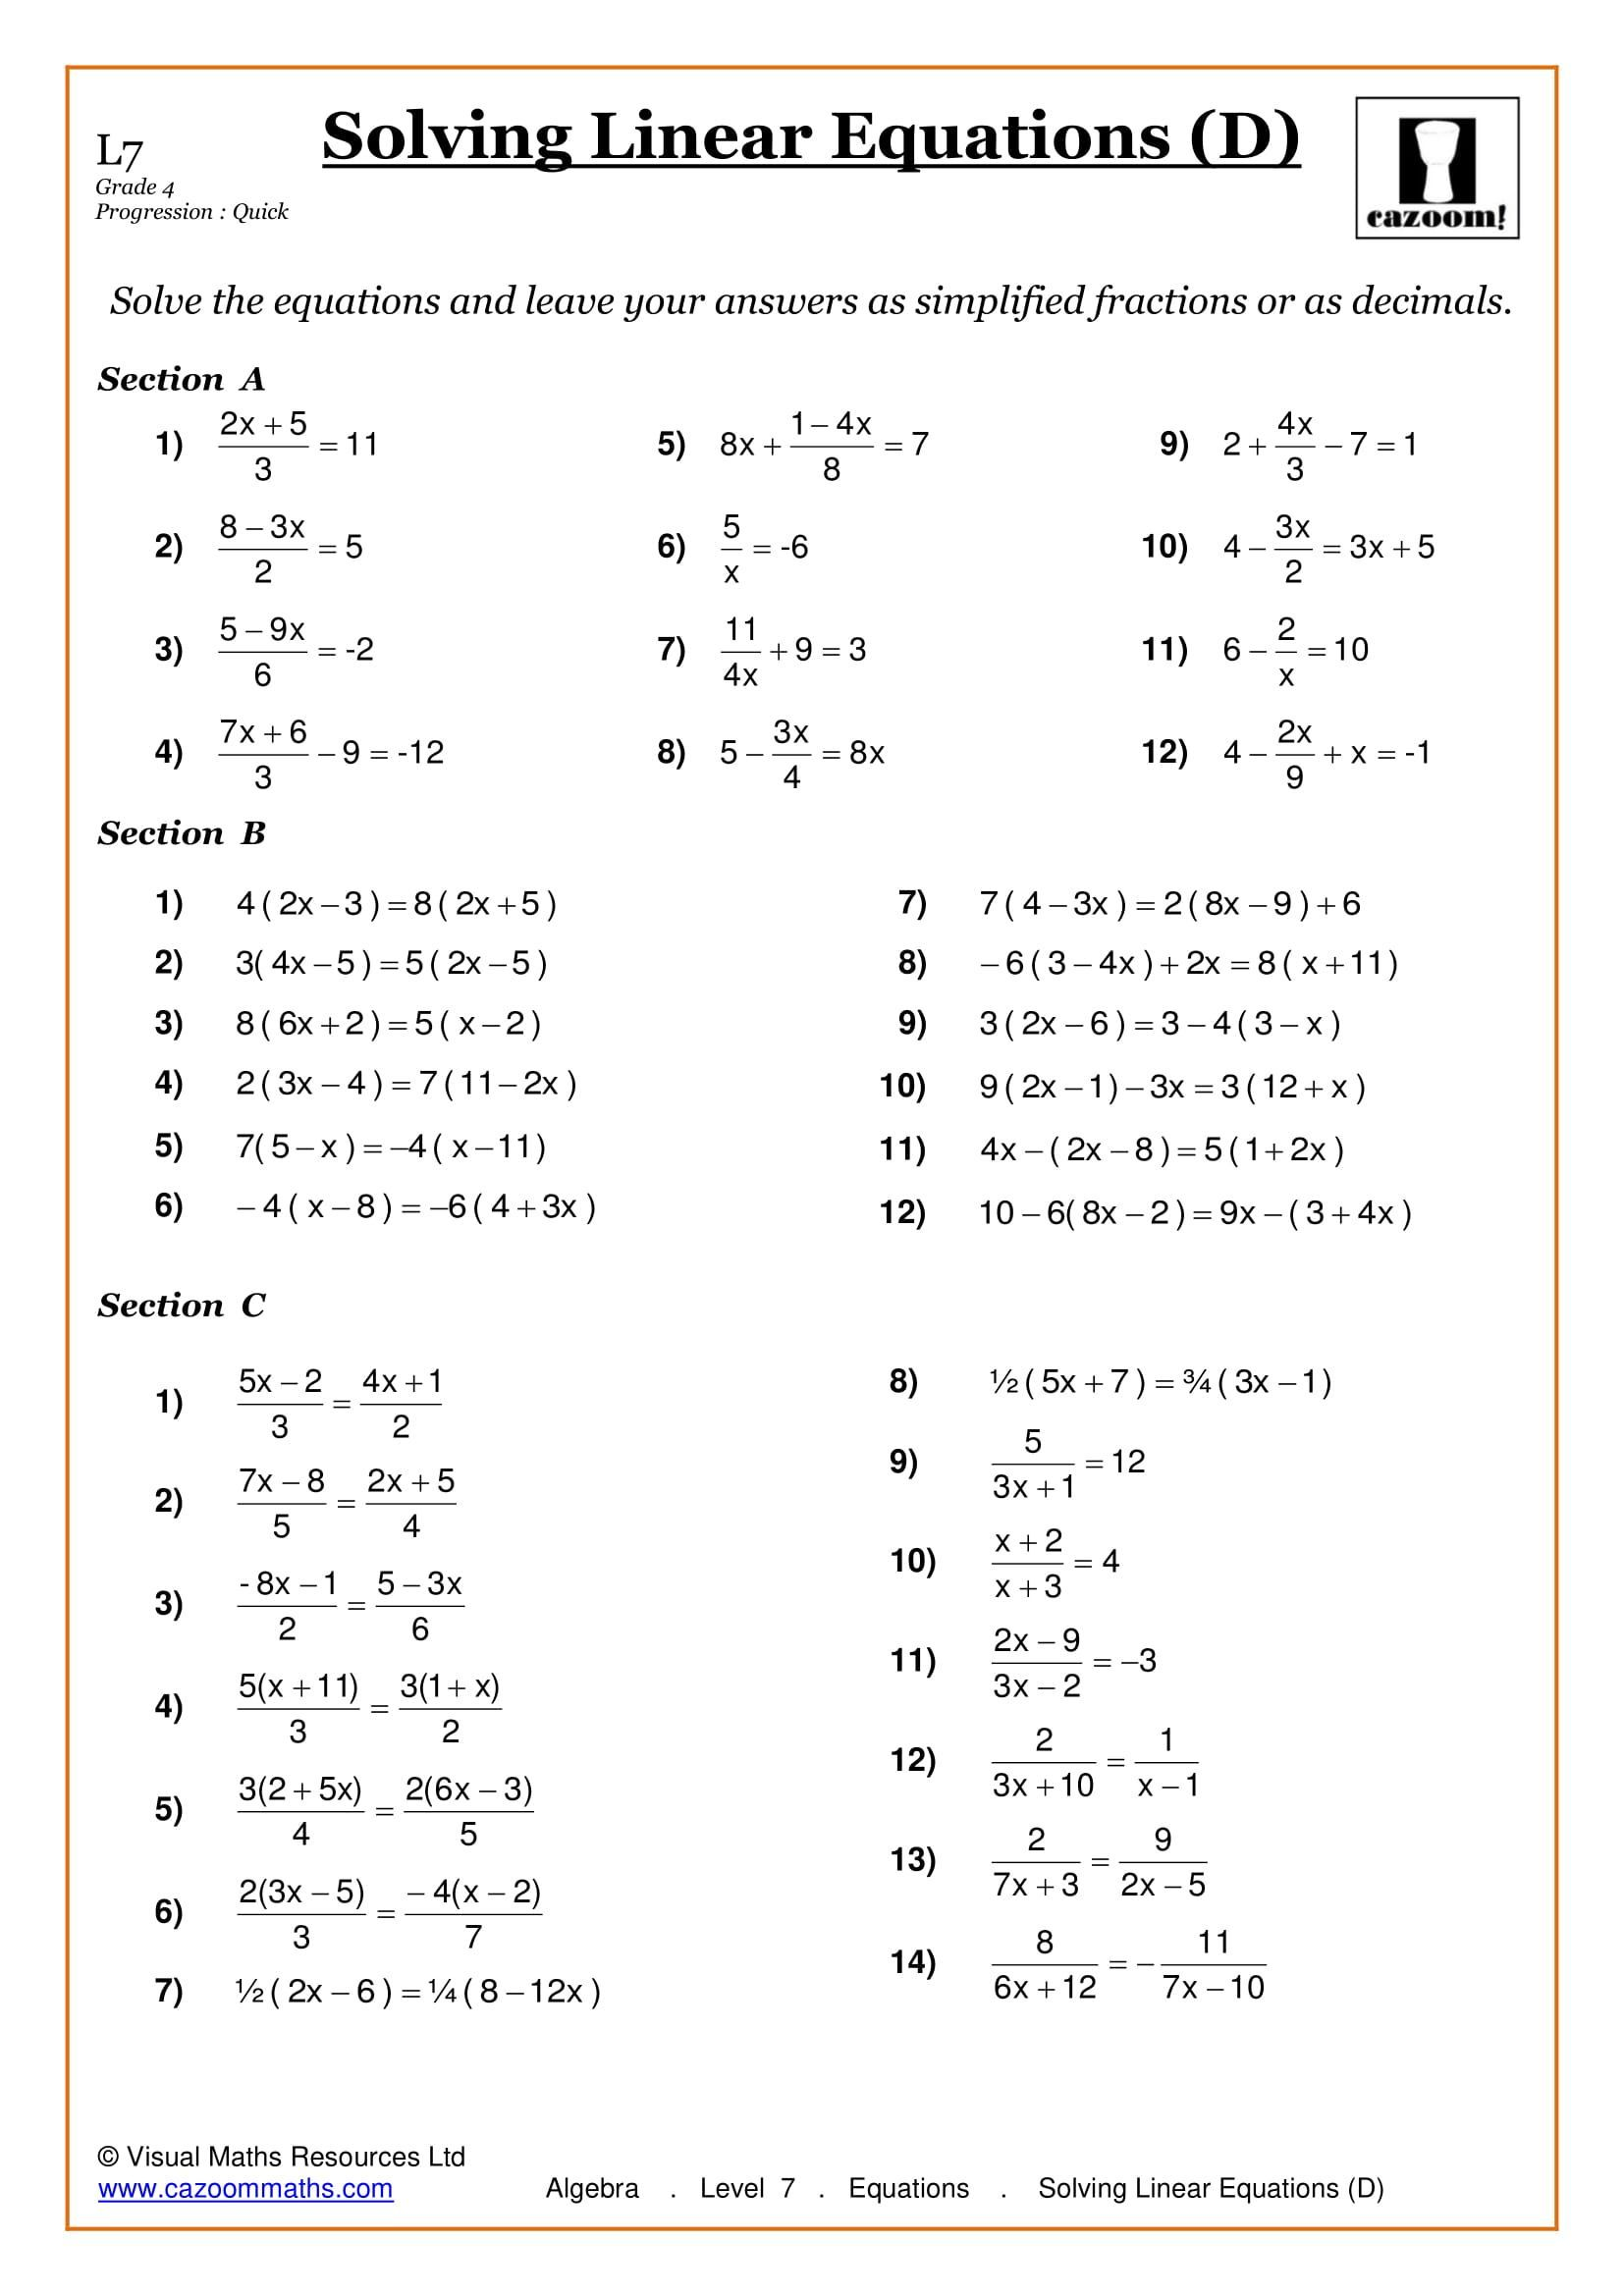 4 Grade 7 Algebra Worksheets In